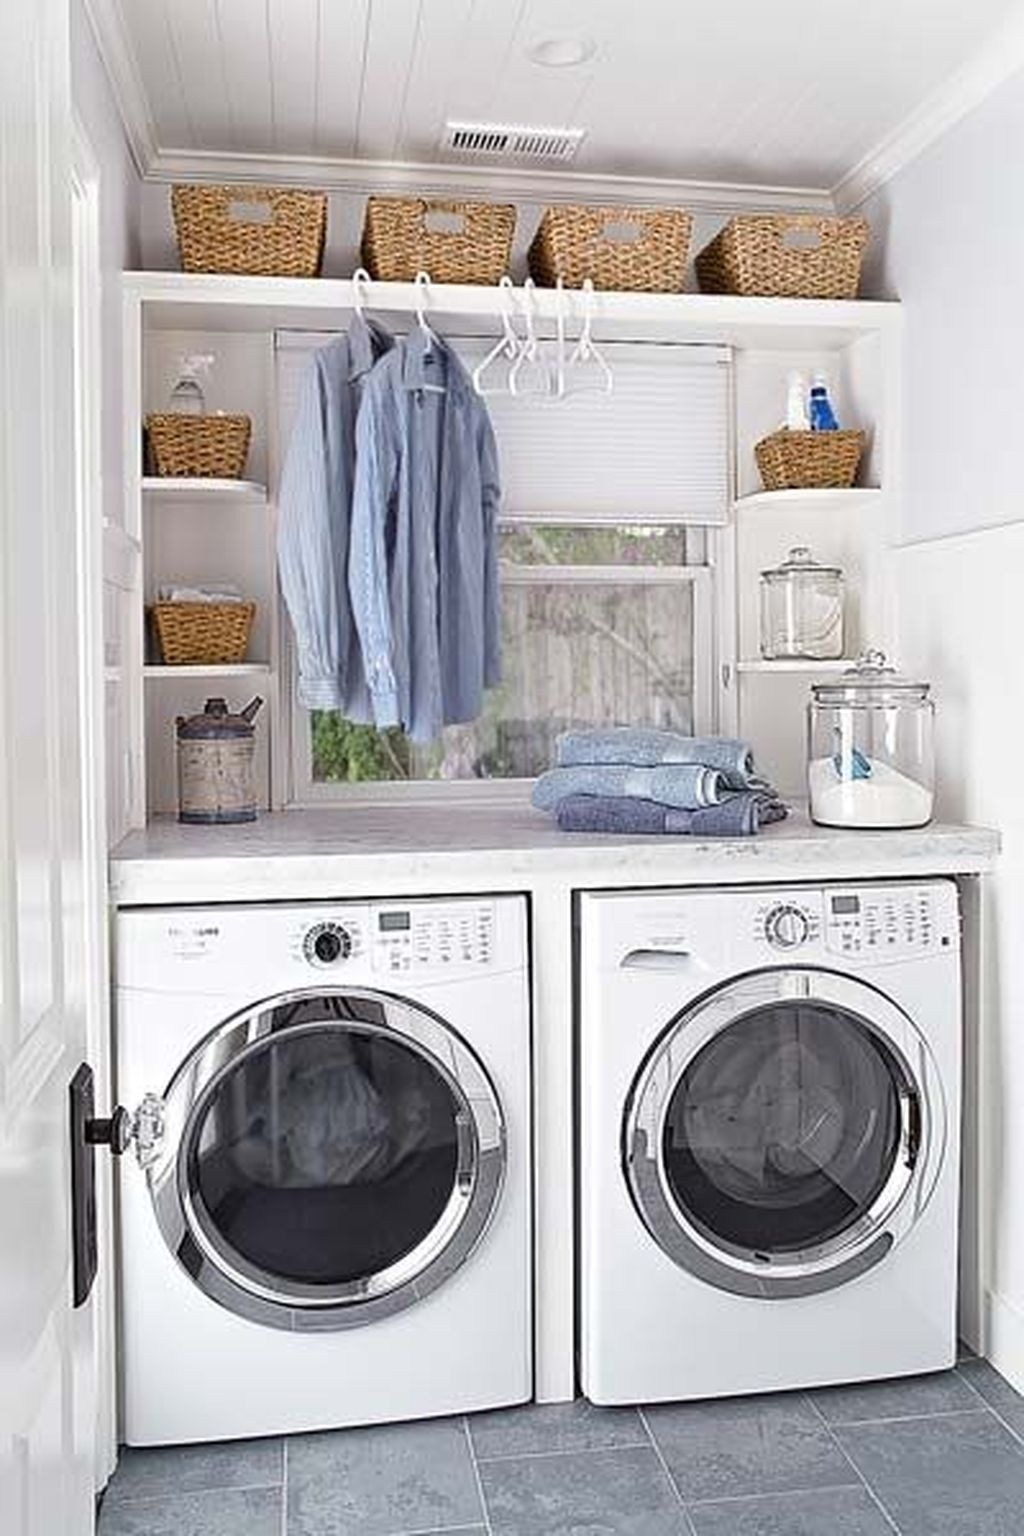 30 Brilliant Small Laundry Room Decorating Ideas To Inspire You Trendhmdcr Laundry Room Remodel Country Laundry Rooms Laundry Room Decor